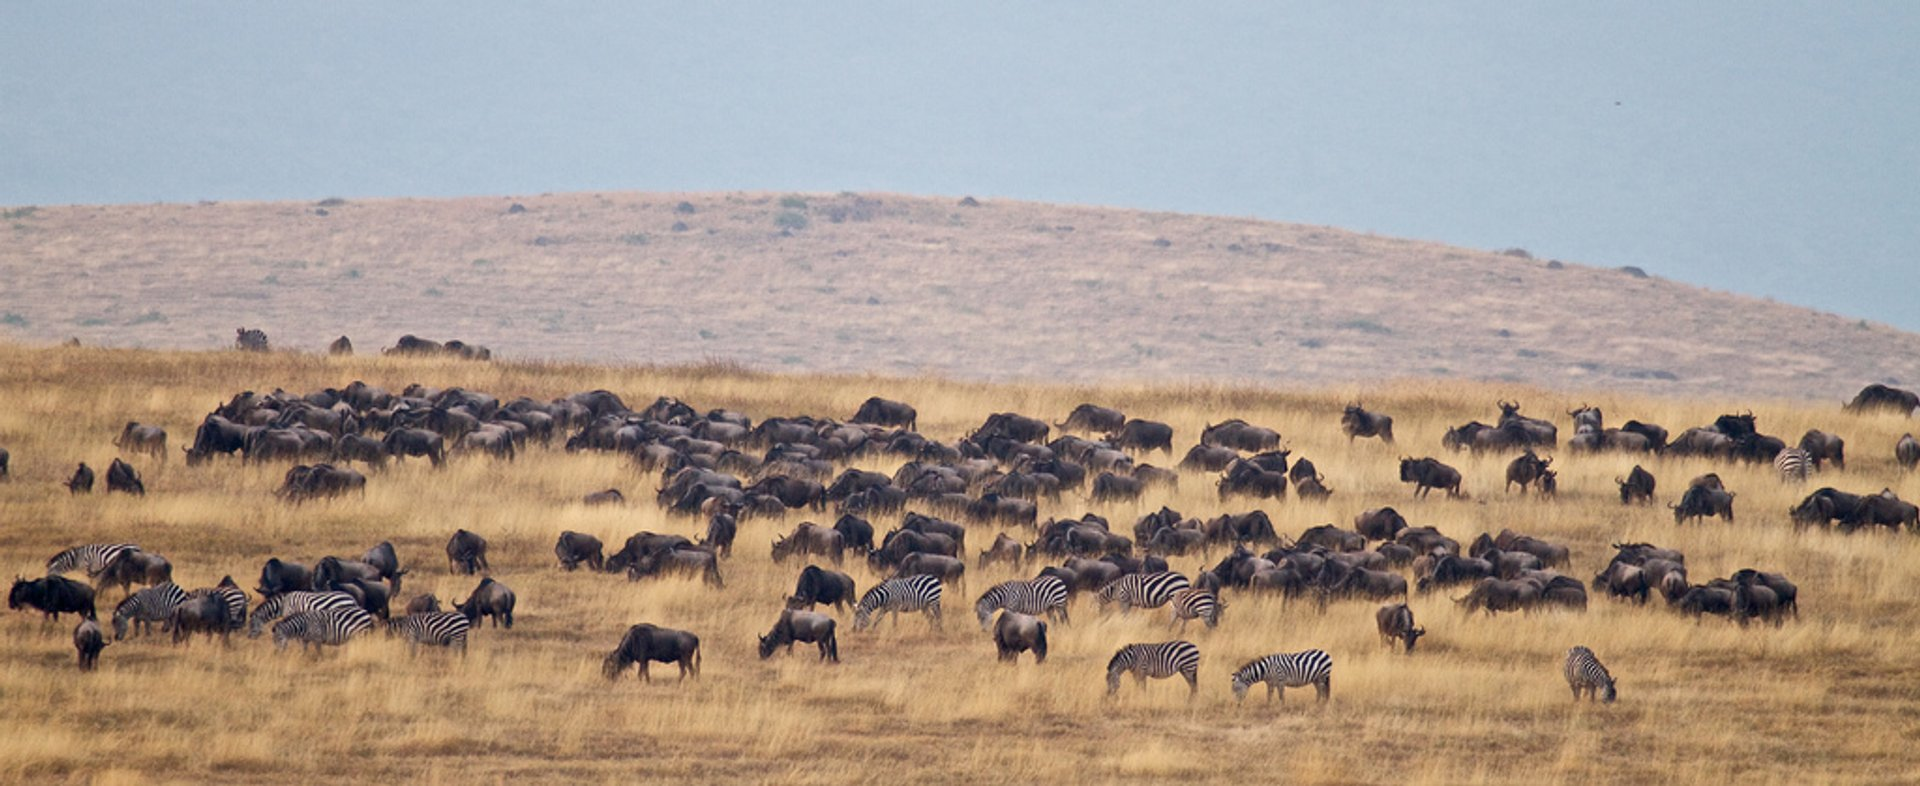 Best time for Ngorongoro Crater in Tanzania 2020